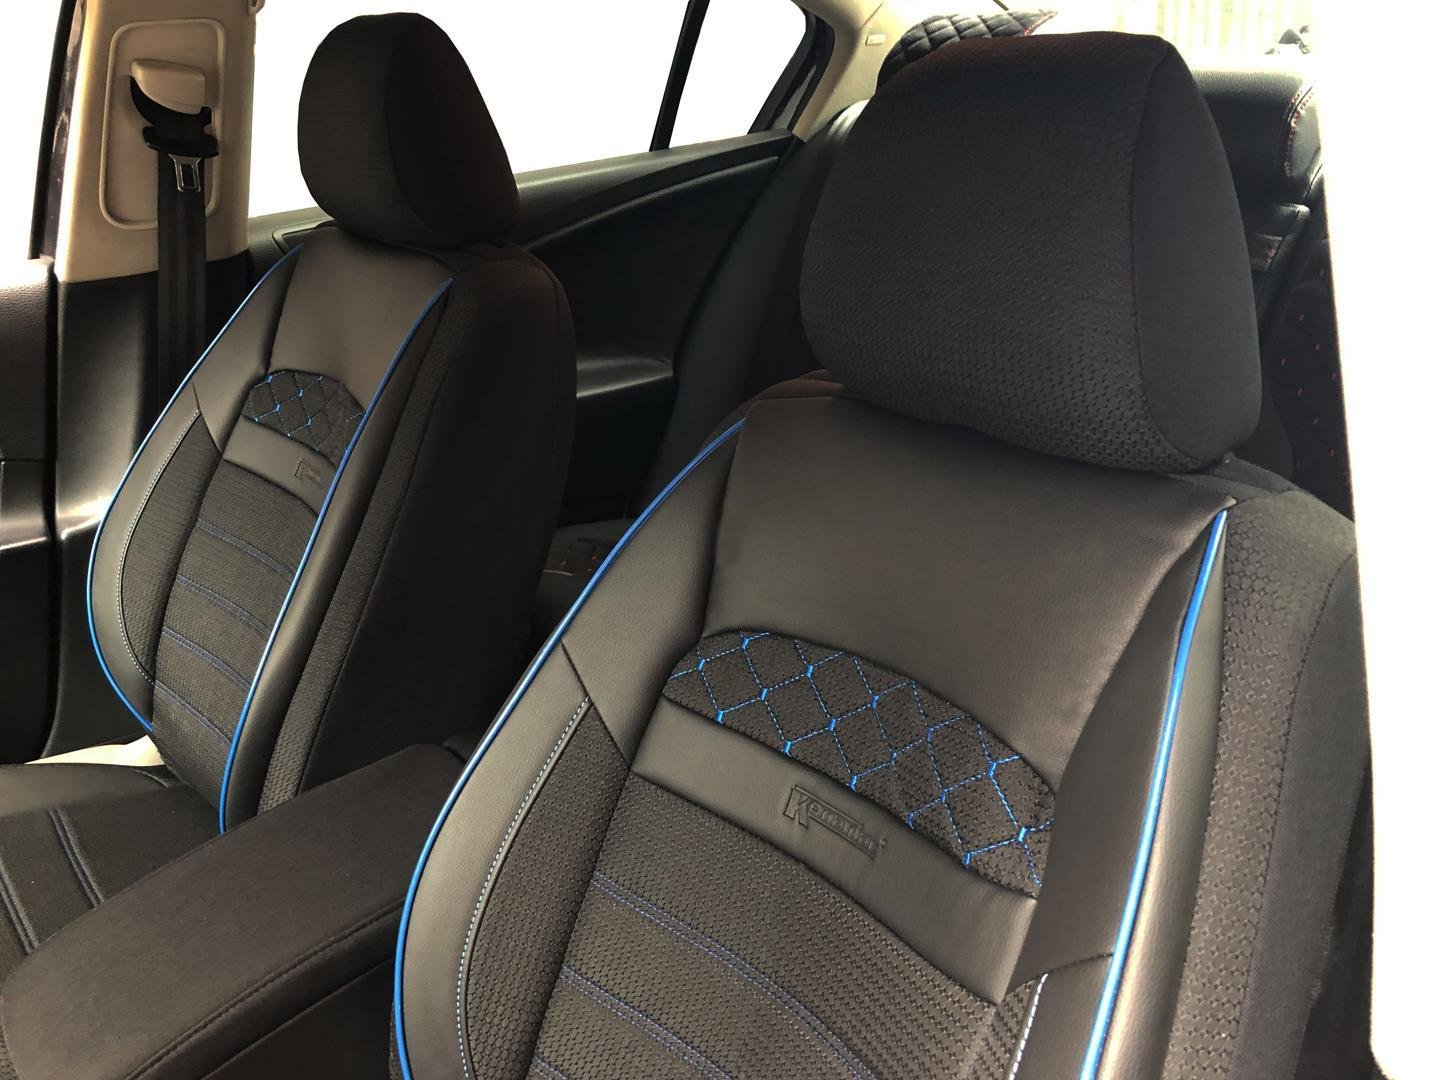 Car Seat Covers Protectors For Suzuki Baleno Black Blue V23 Front Seats